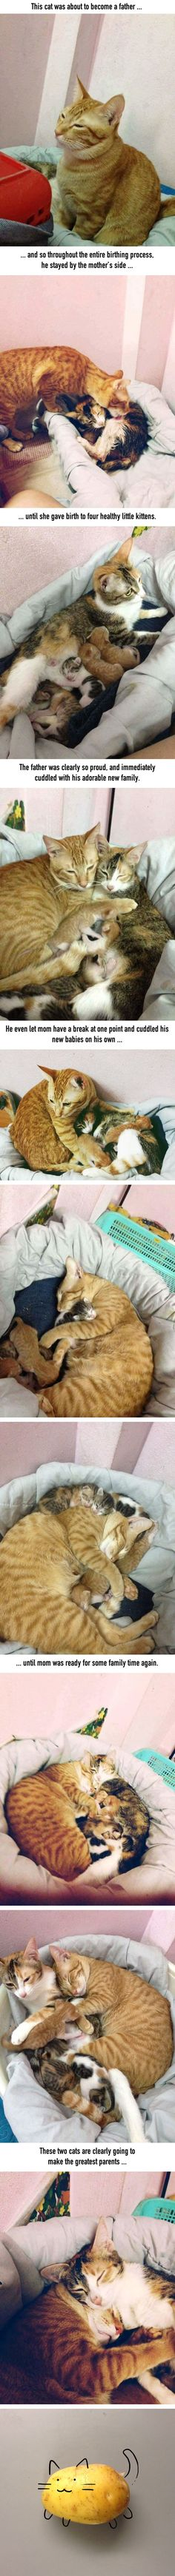 Cat dad won't leave mom's side as their kids are being born - 9GAG